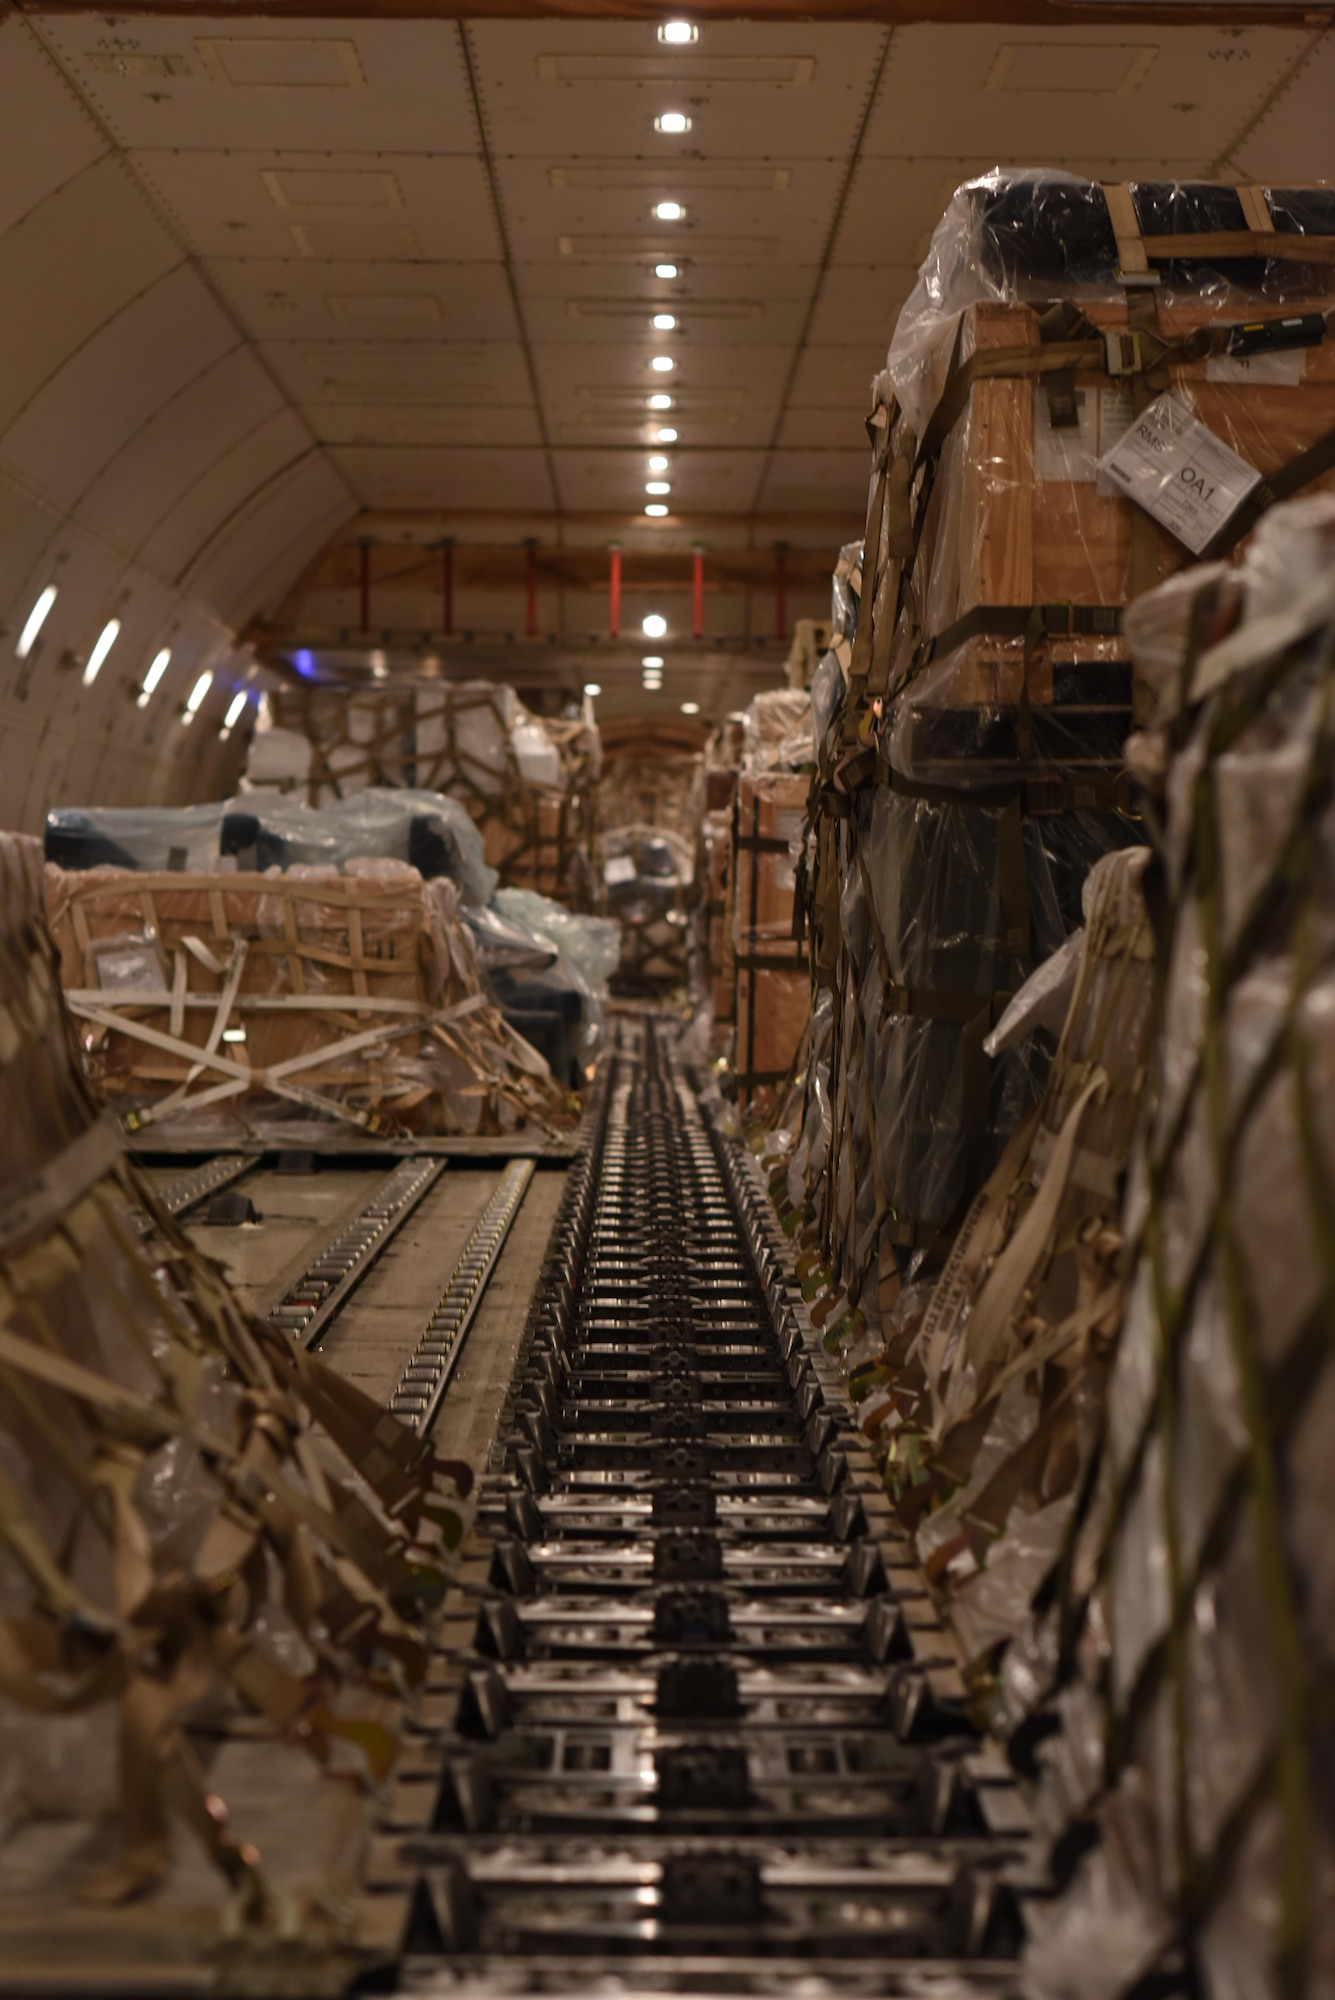 Cargo waits as Airmen with the 8th Expeditionary Air Mobility Squadron prepare to offload it at Al Udeid Air Base, Qatar, Dec. 24, 2016. The 8th EAMS Airmen work round the clock to ensure cargo is loaded and offloaded in an expedient manner.  (U.S. Air Force photo by Senior Airman Cynthia A. Innocenti)